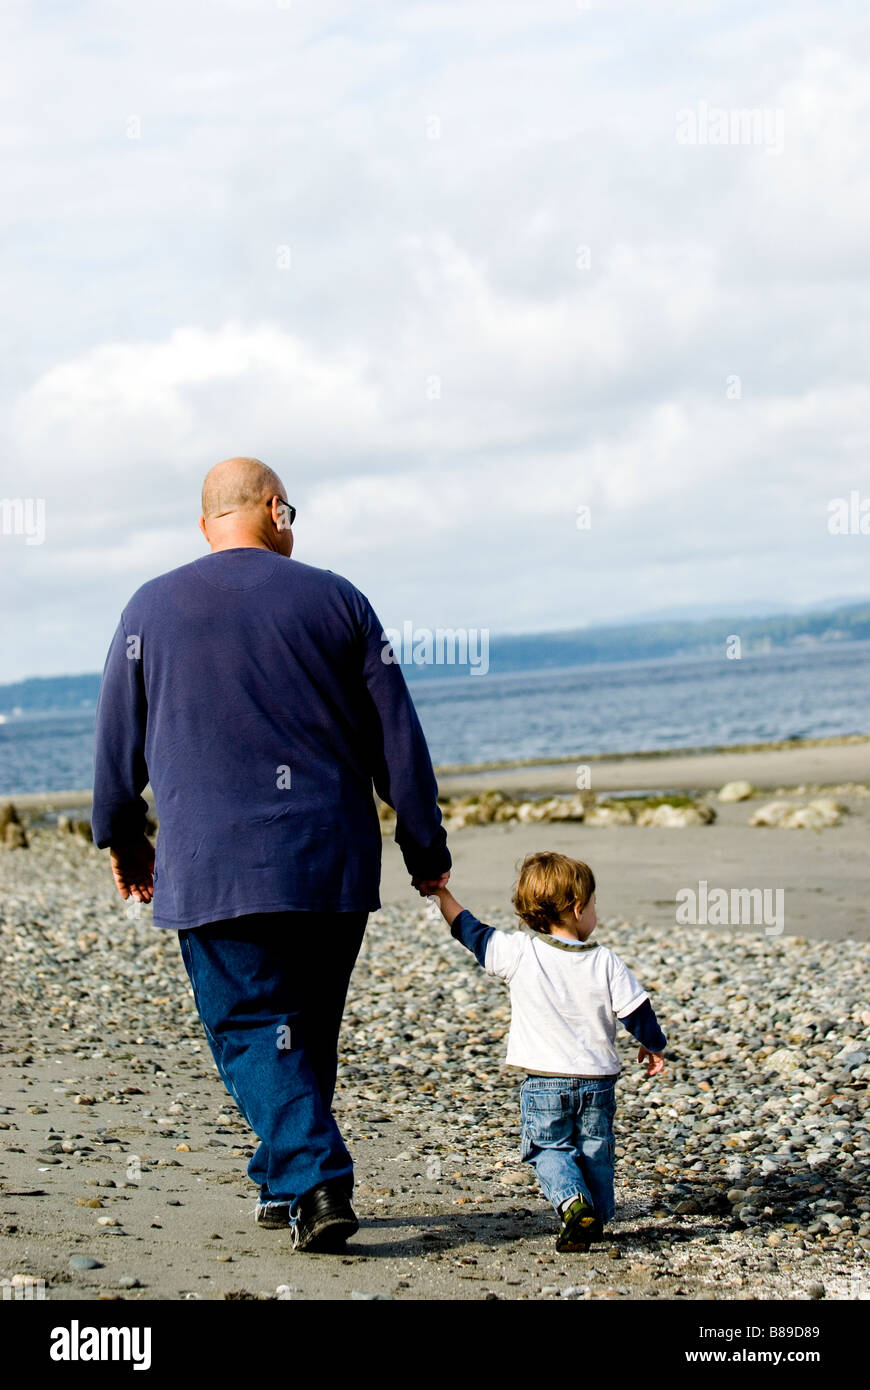 Father holds hands with his son on the beach. - Stock Image